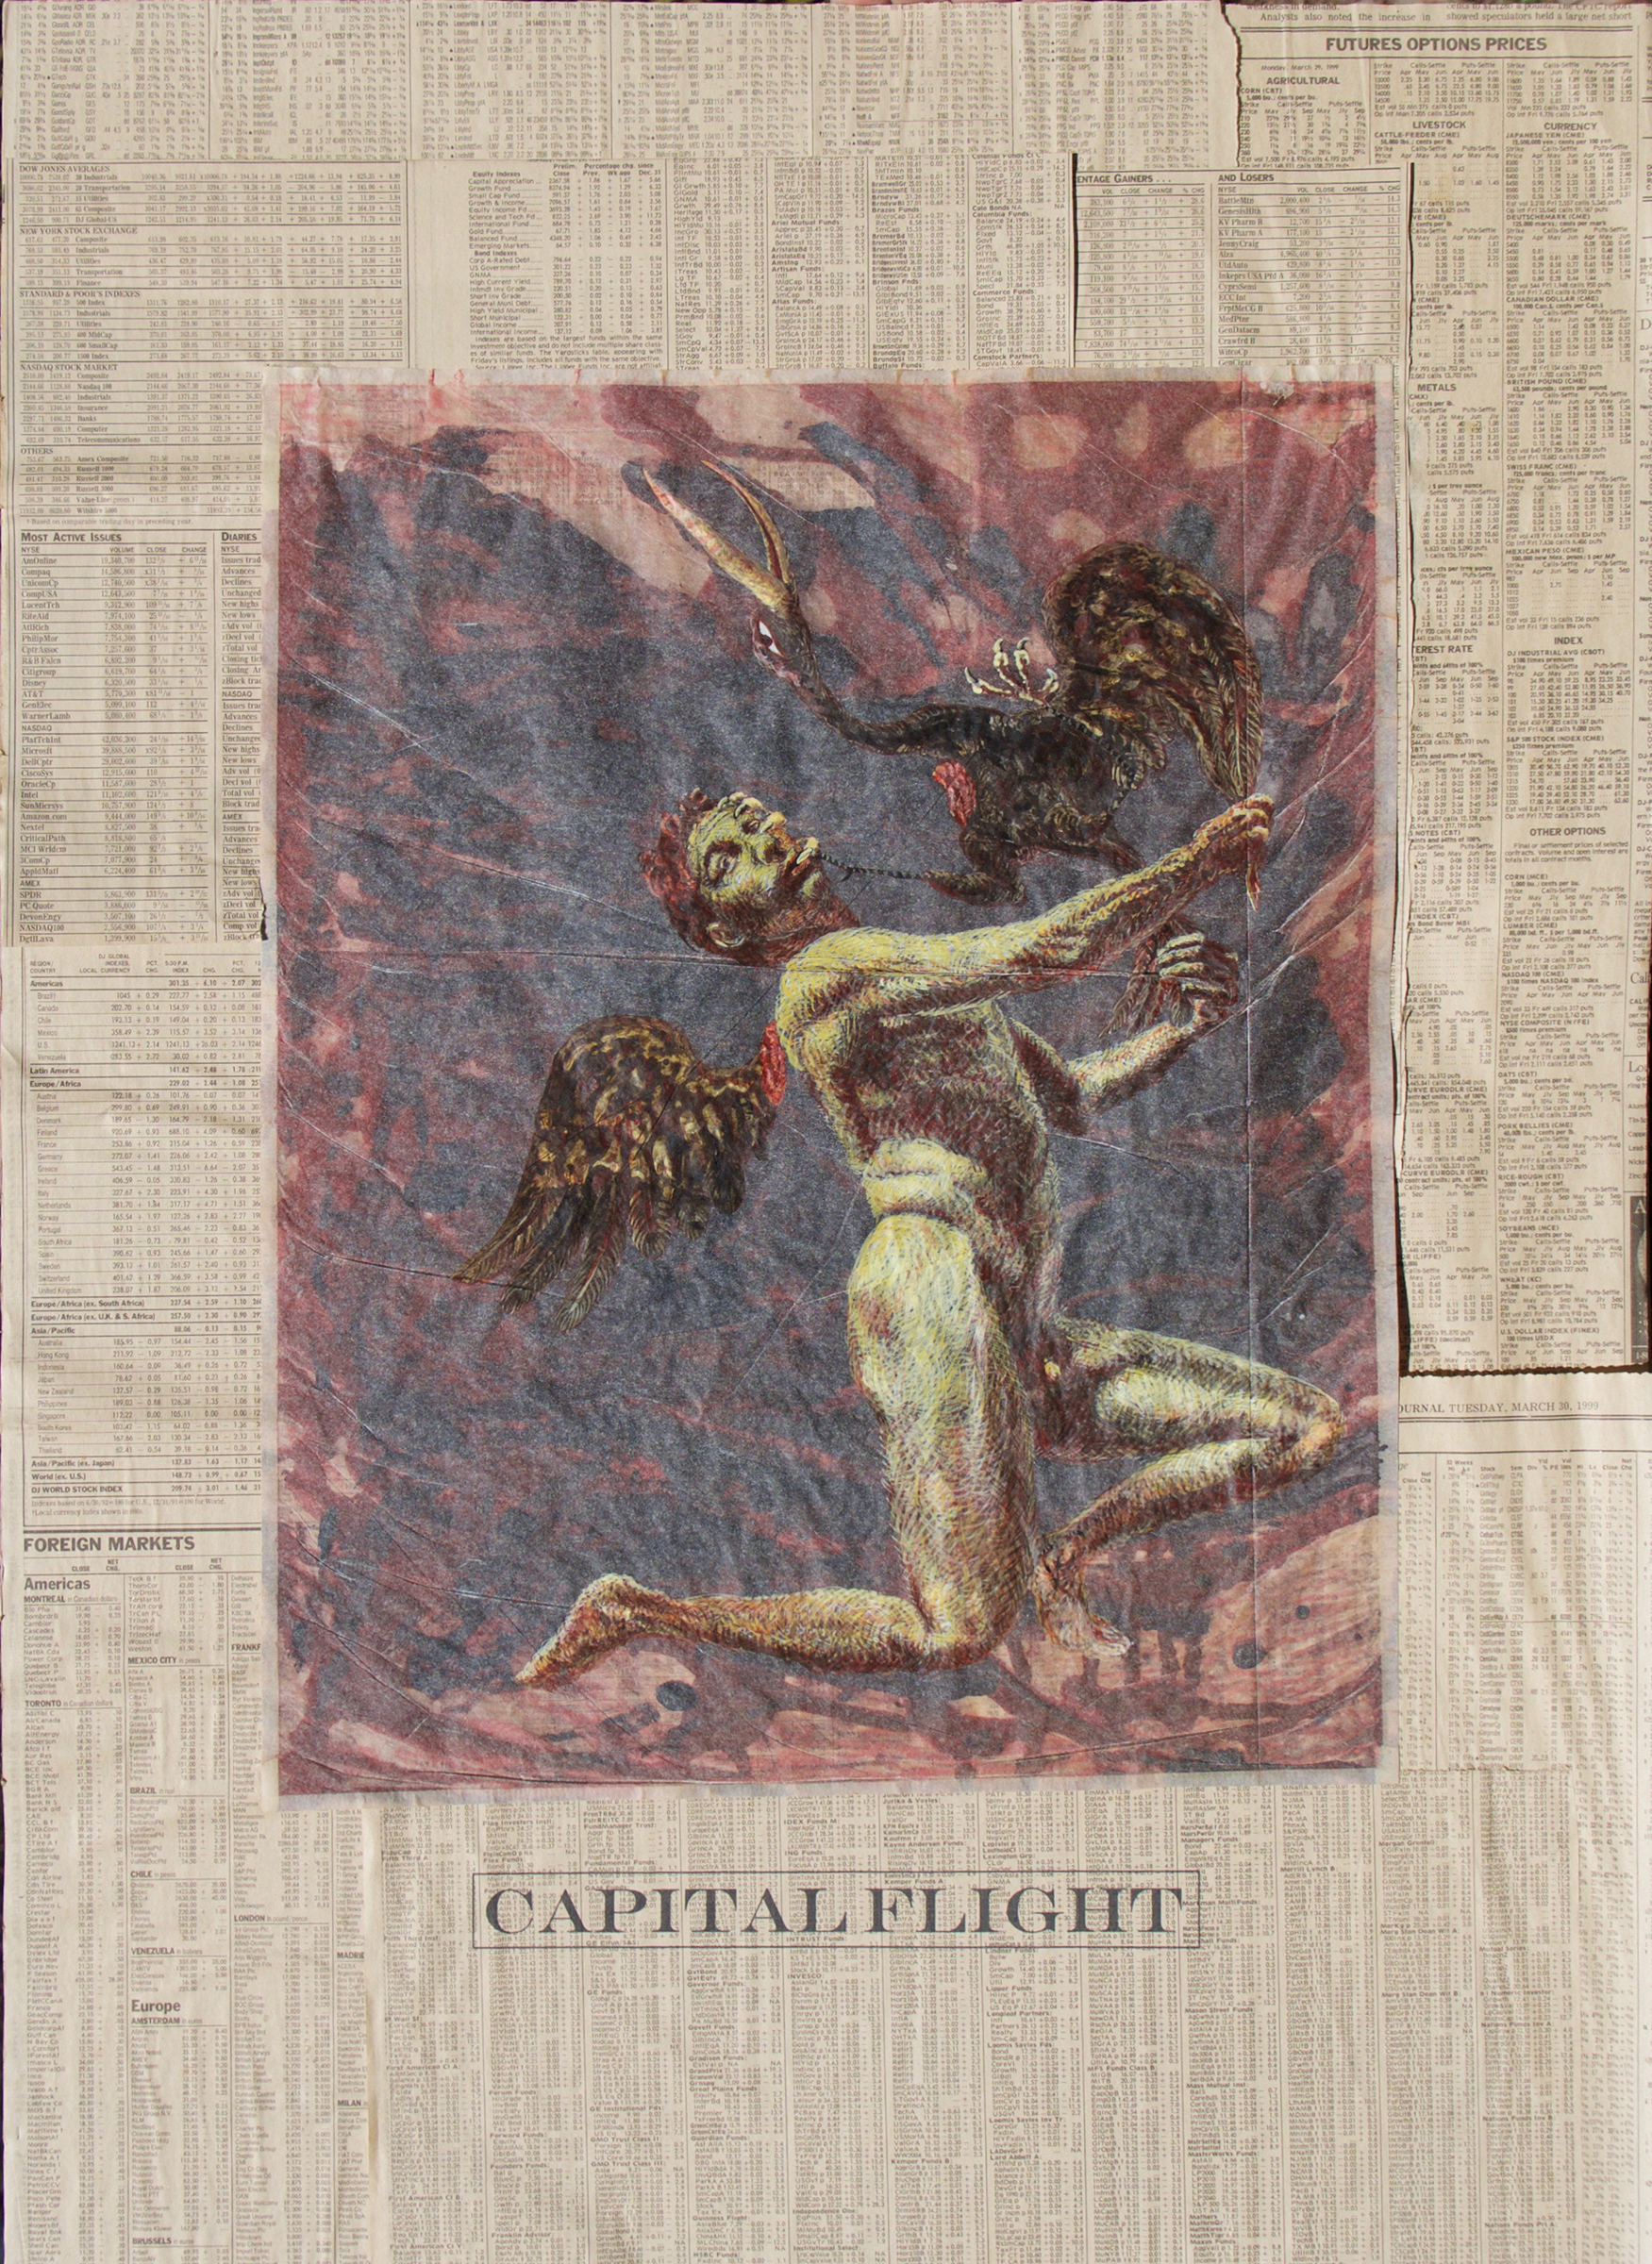 CAPITAL FLIGHT, 1999